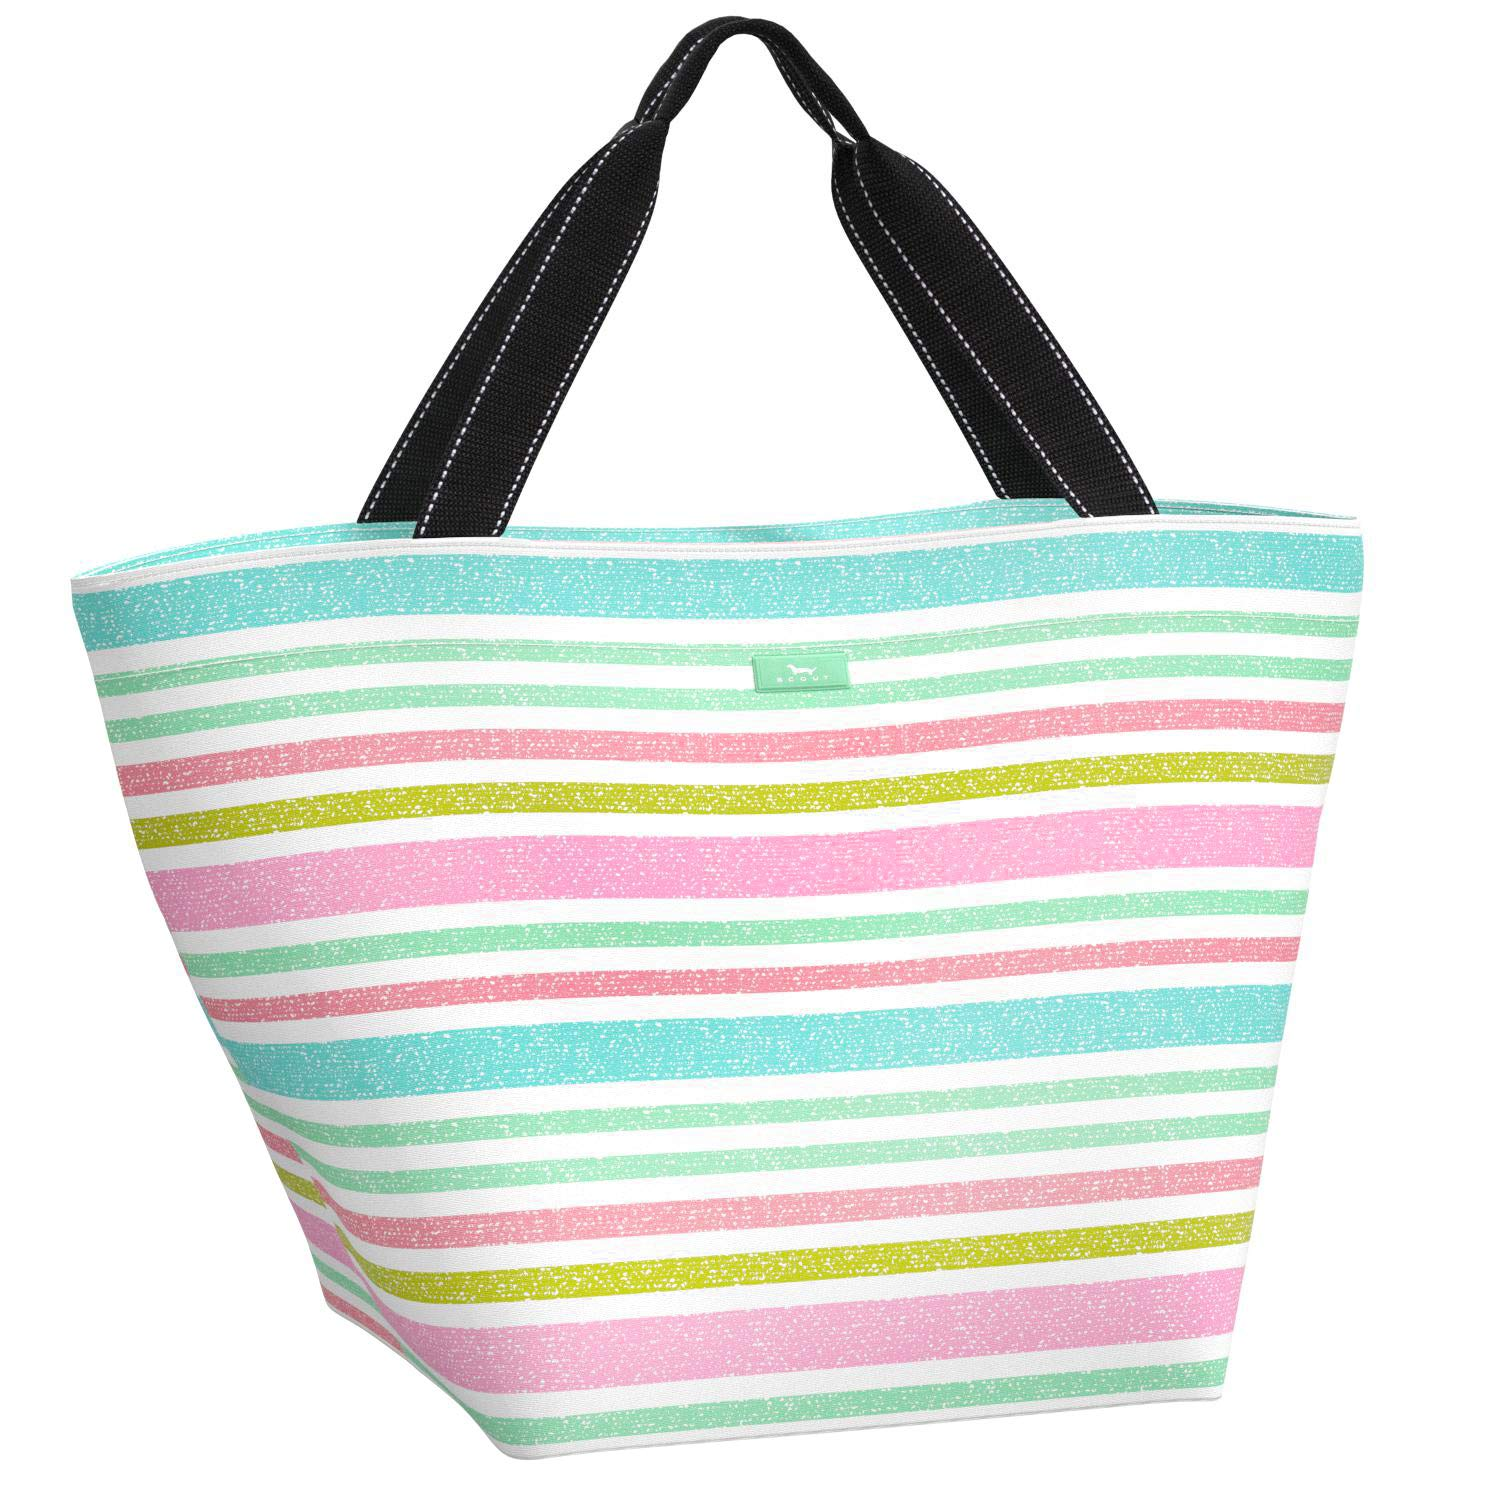 SCOUT WEEKENDER BAG for Women, Lightweight Travel Tote Bag or Beach Bag (Multiple Patterns Available)